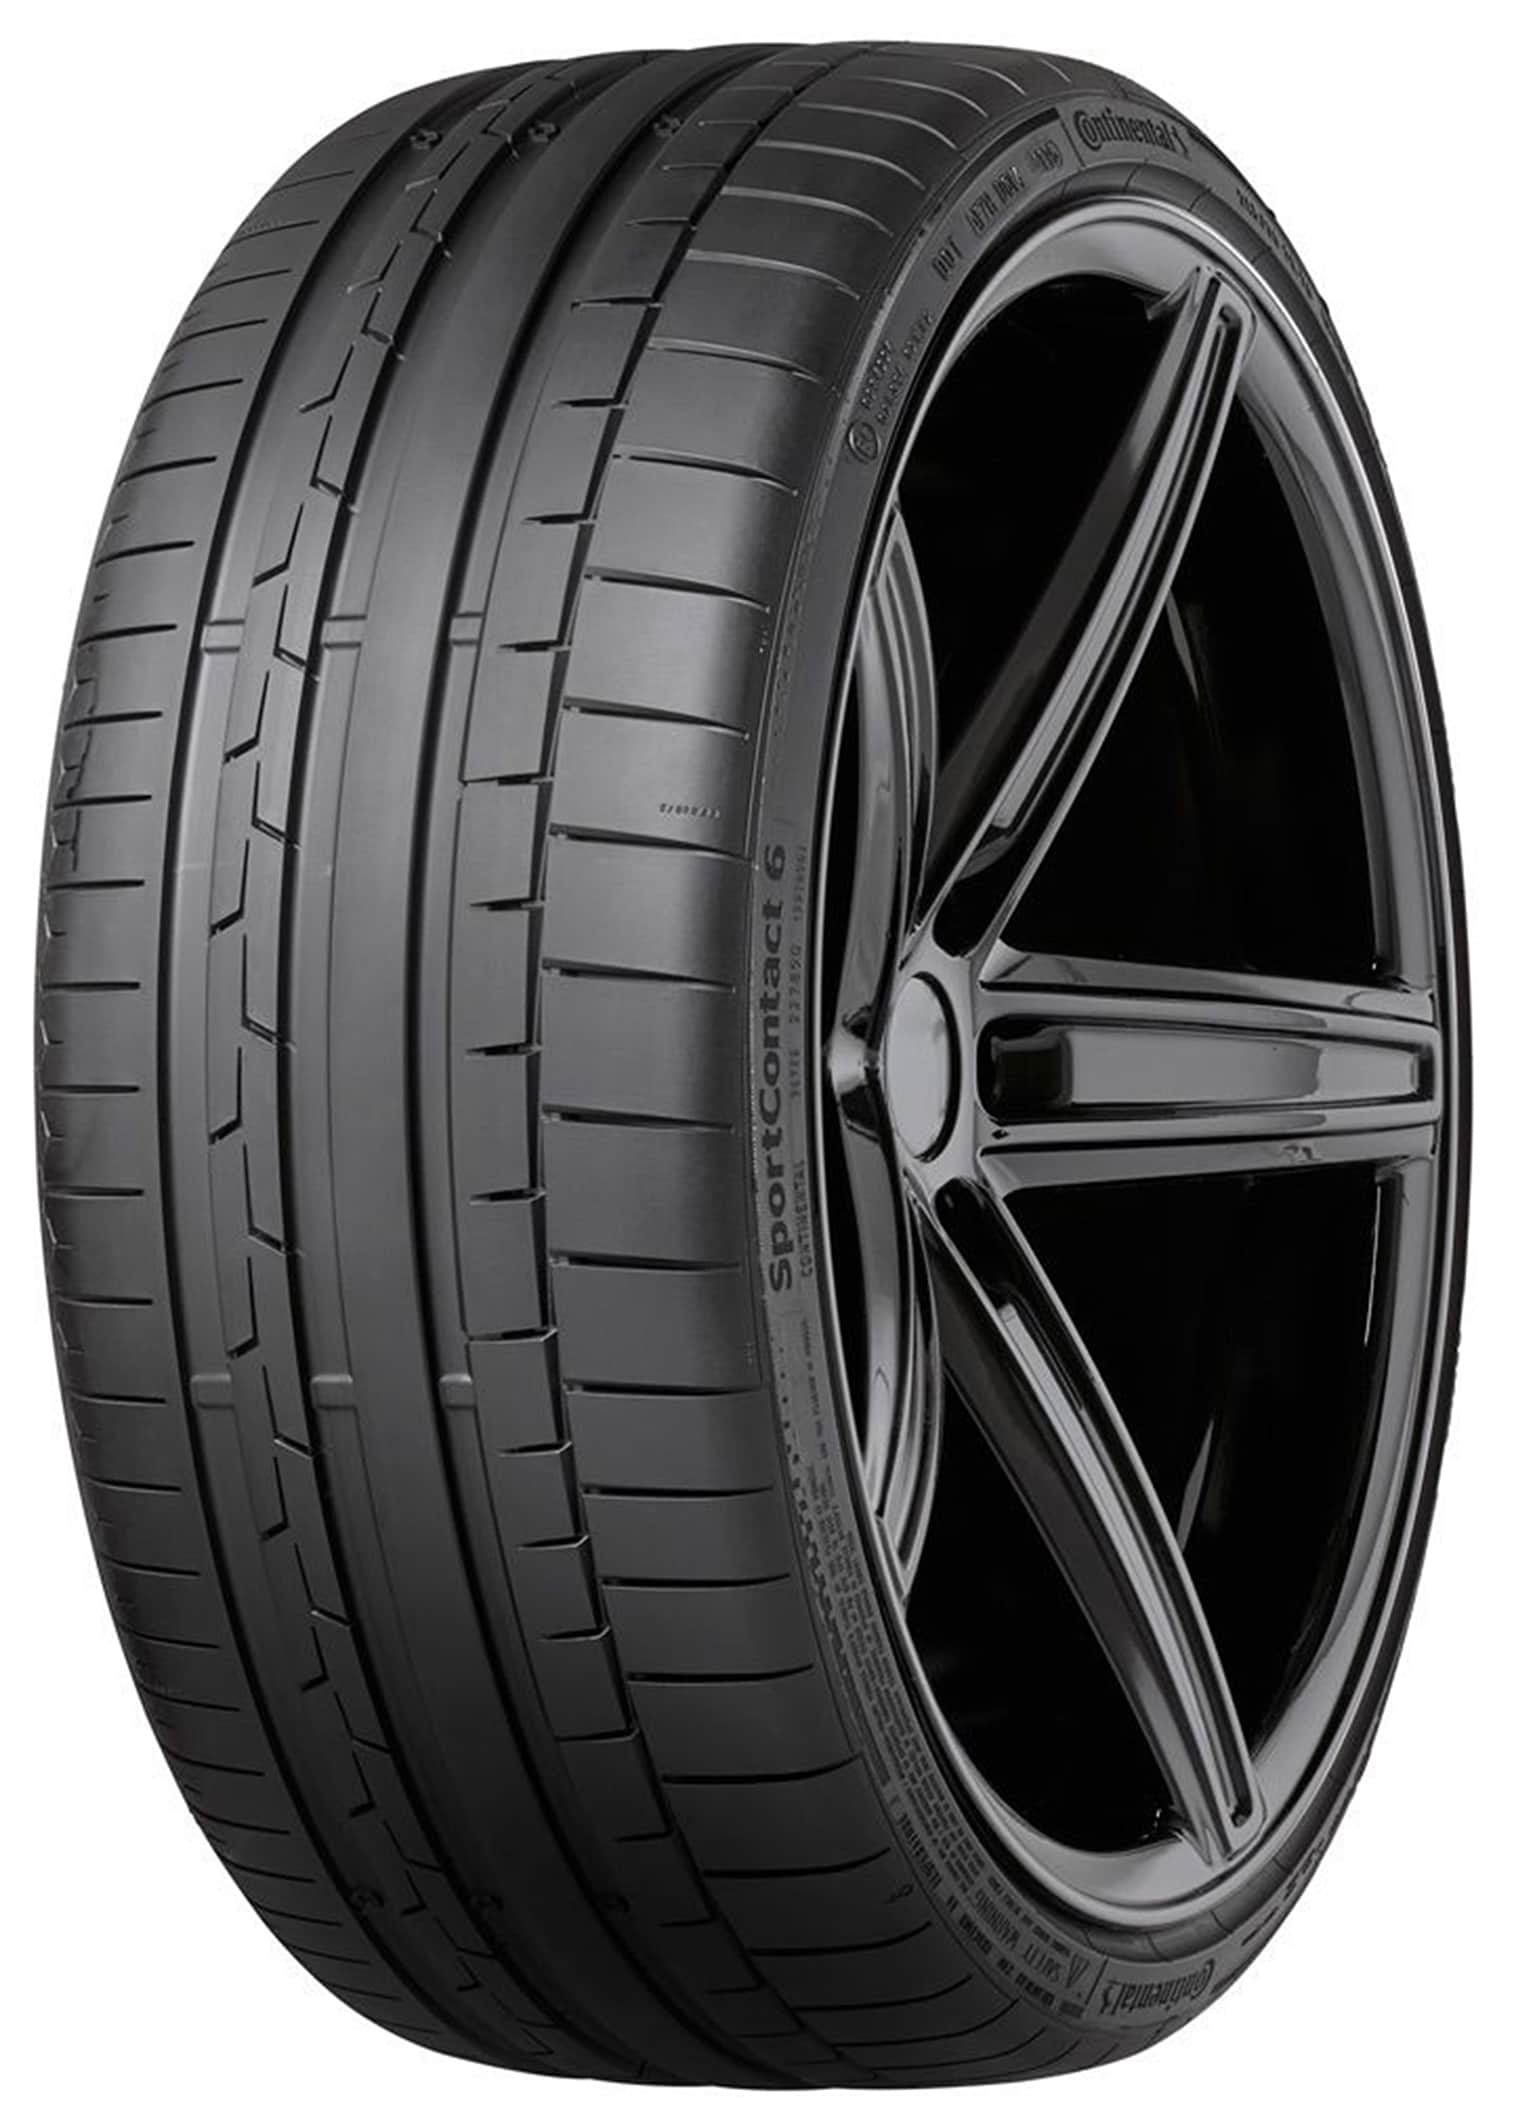 BMW M4 G82 to also get factory-fitted with Continental SportContact 6 tires